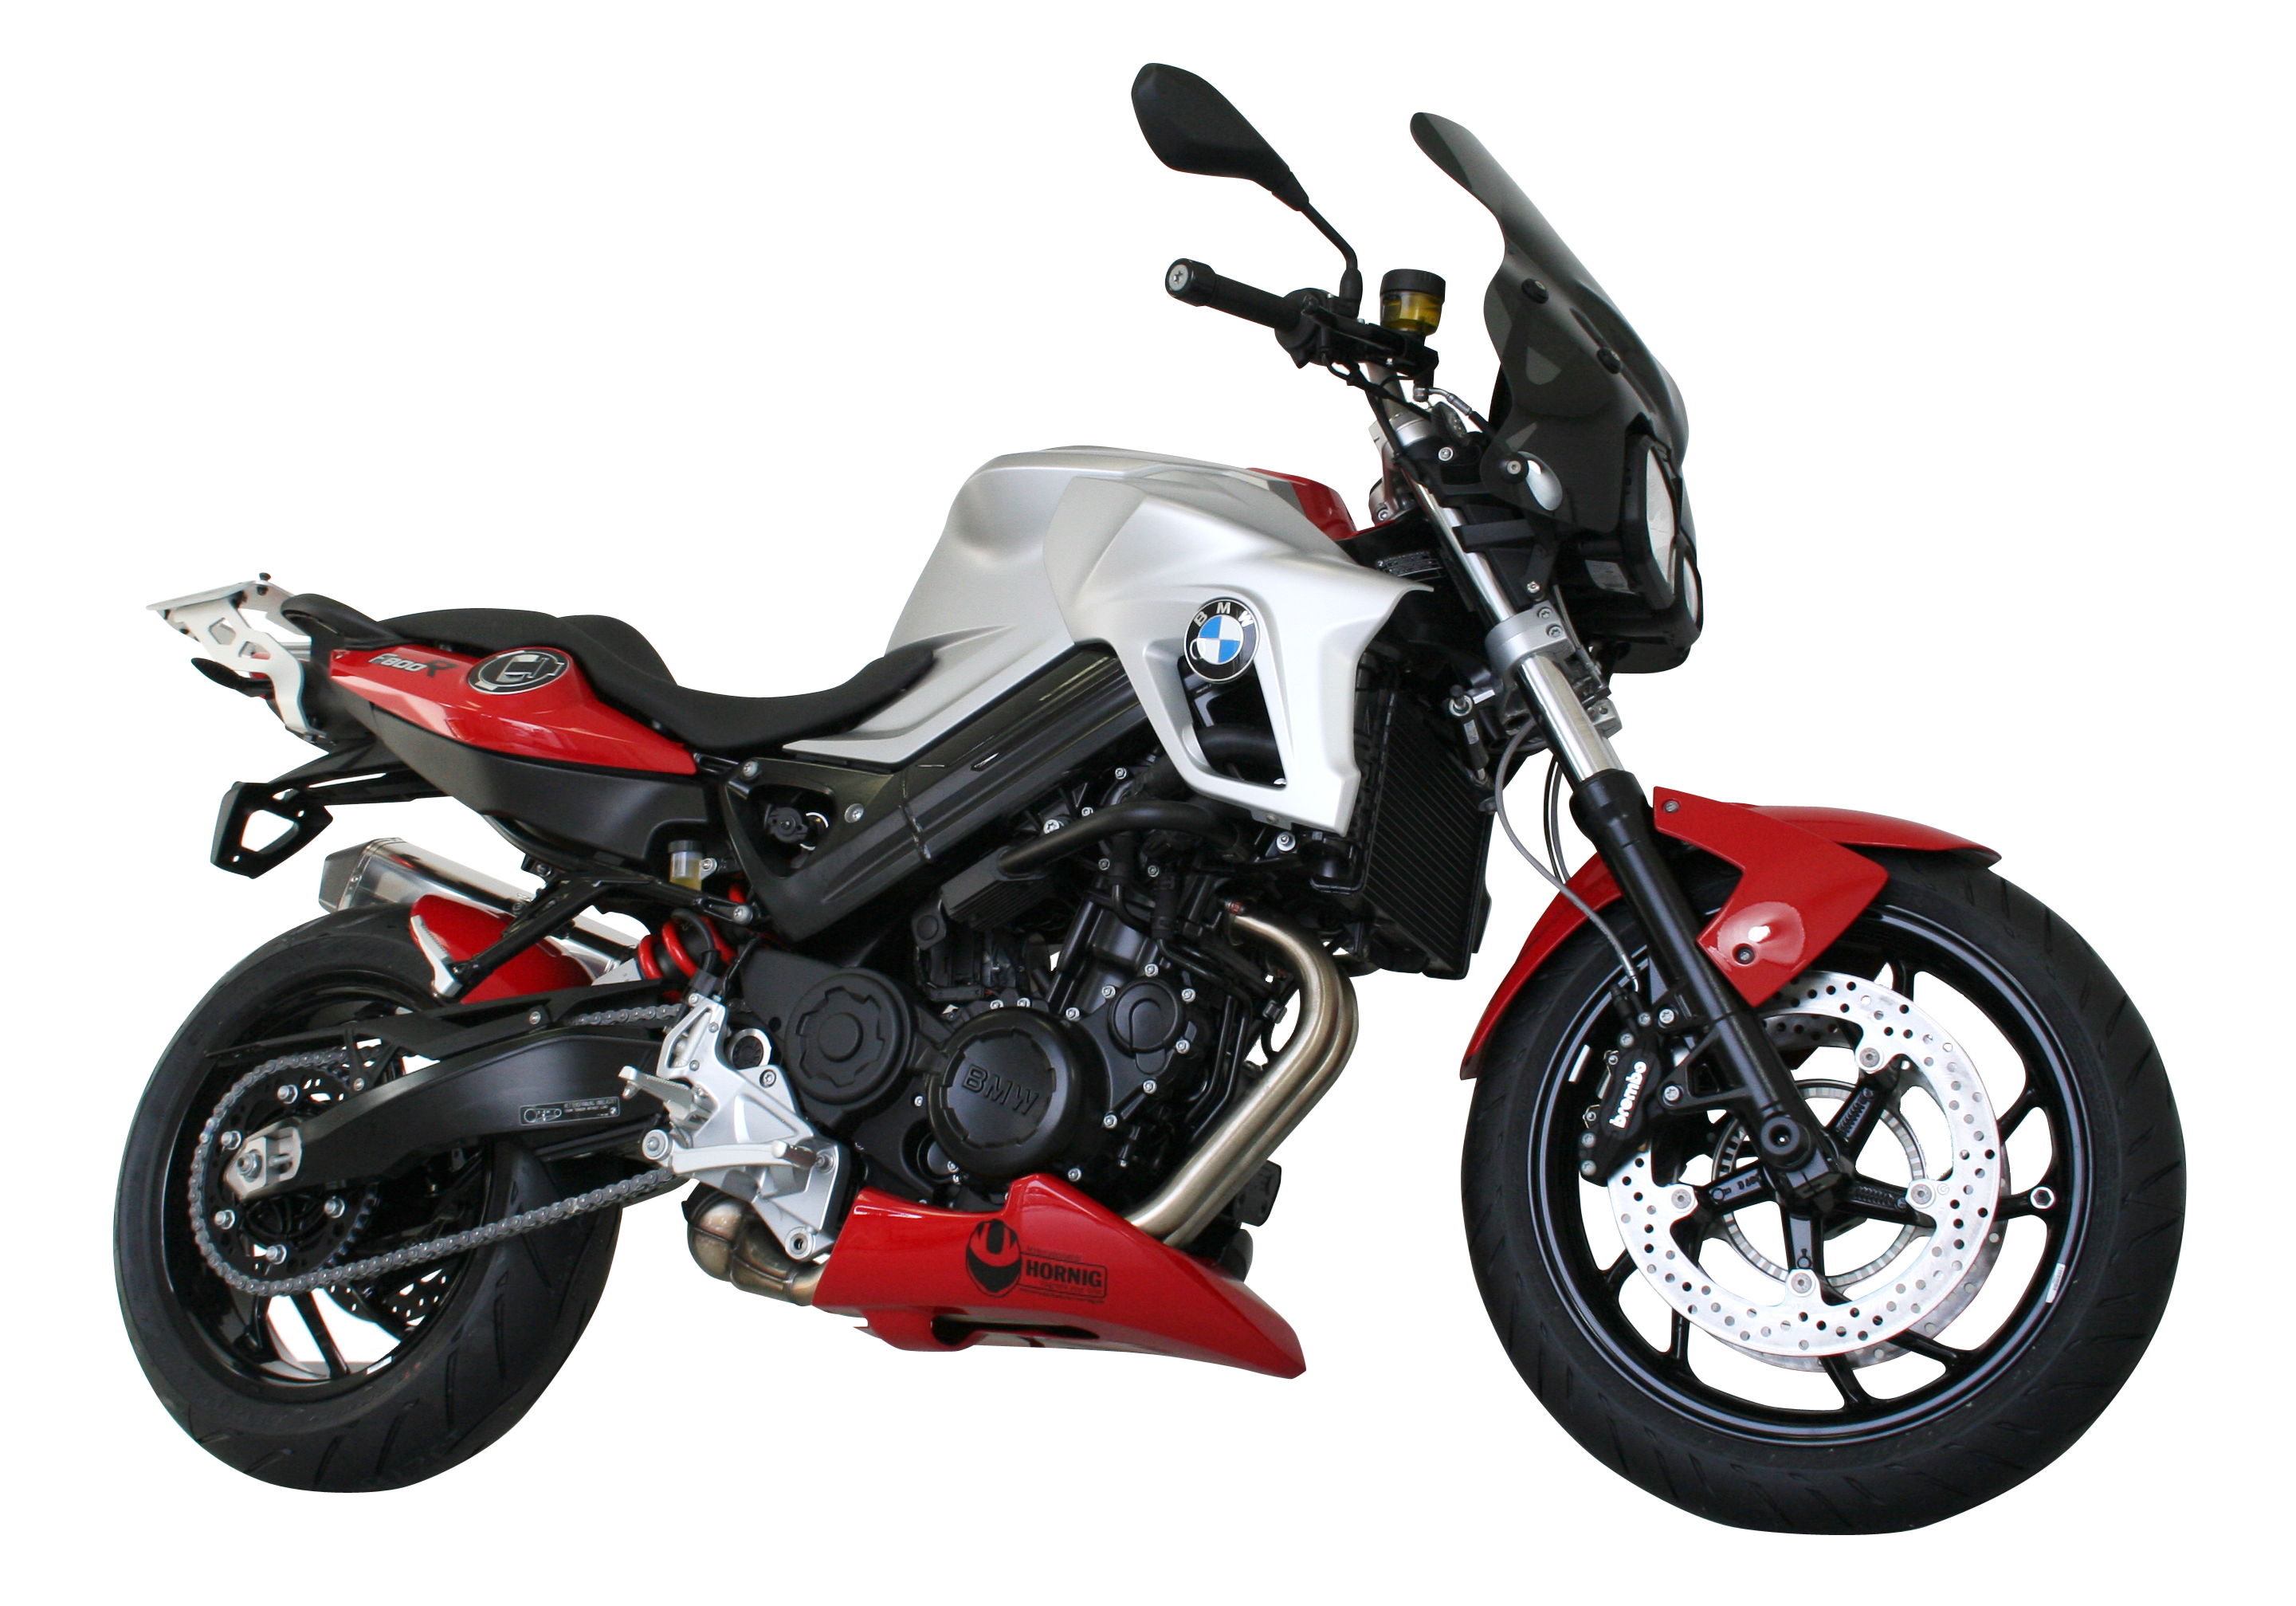 hornig bmw f800r customization from naked bike to tourer. Black Bedroom Furniture Sets. Home Design Ideas